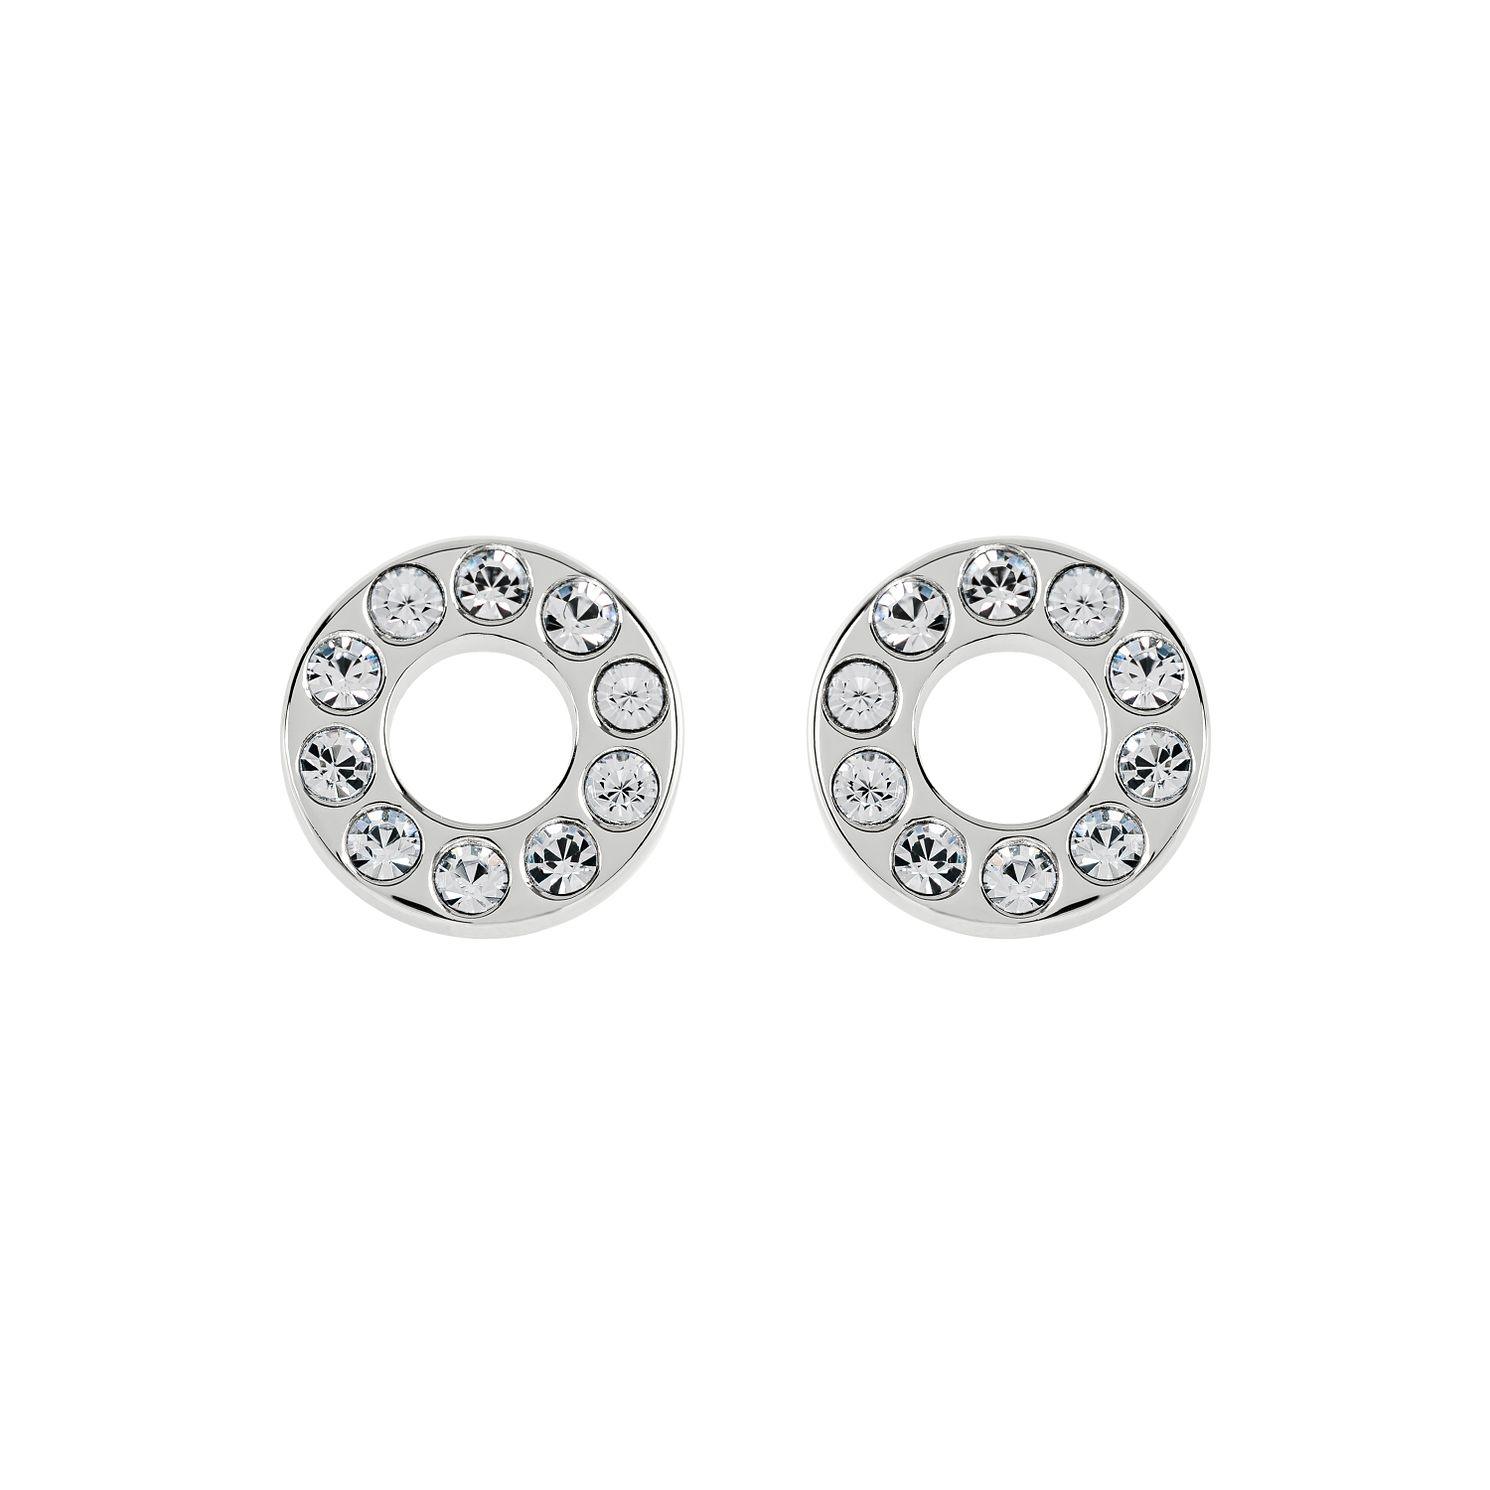 Radley Silver Open Circle Czech Crystal Stud Earrings - Product number 6088767